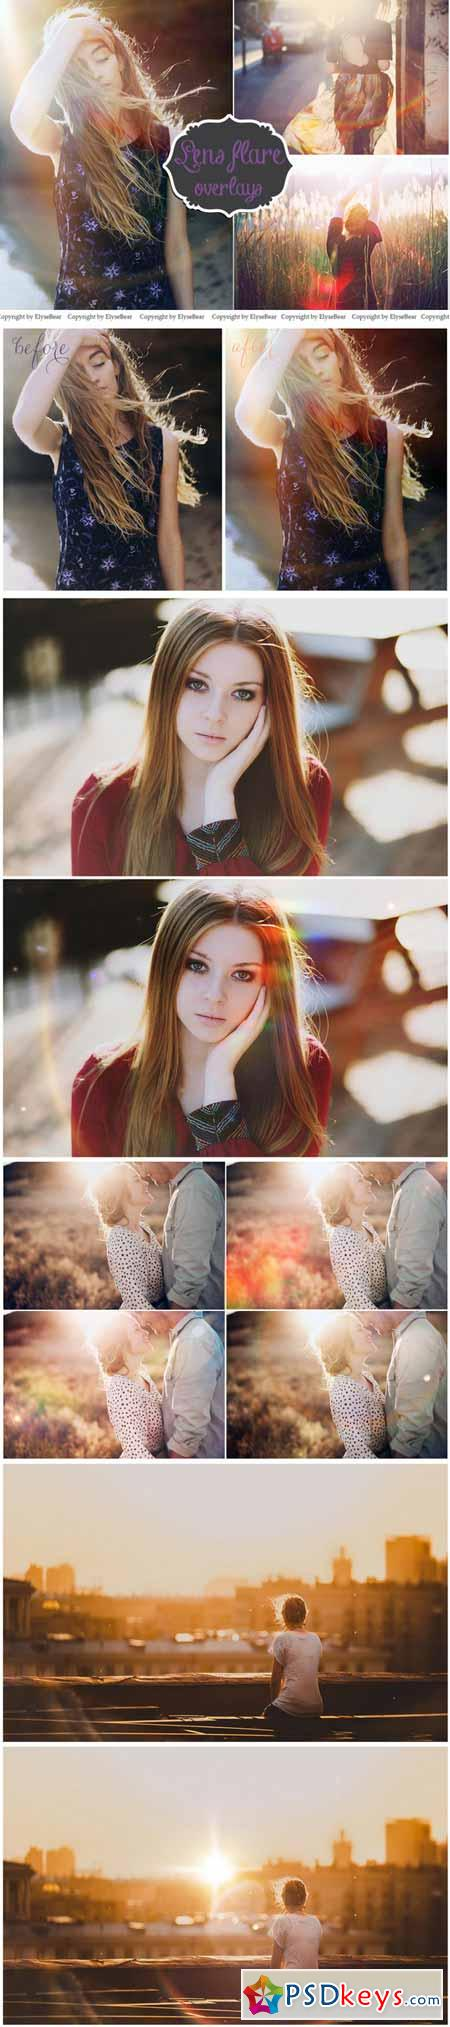 30 Lens Flare Overlays JPEG and PNG 153609